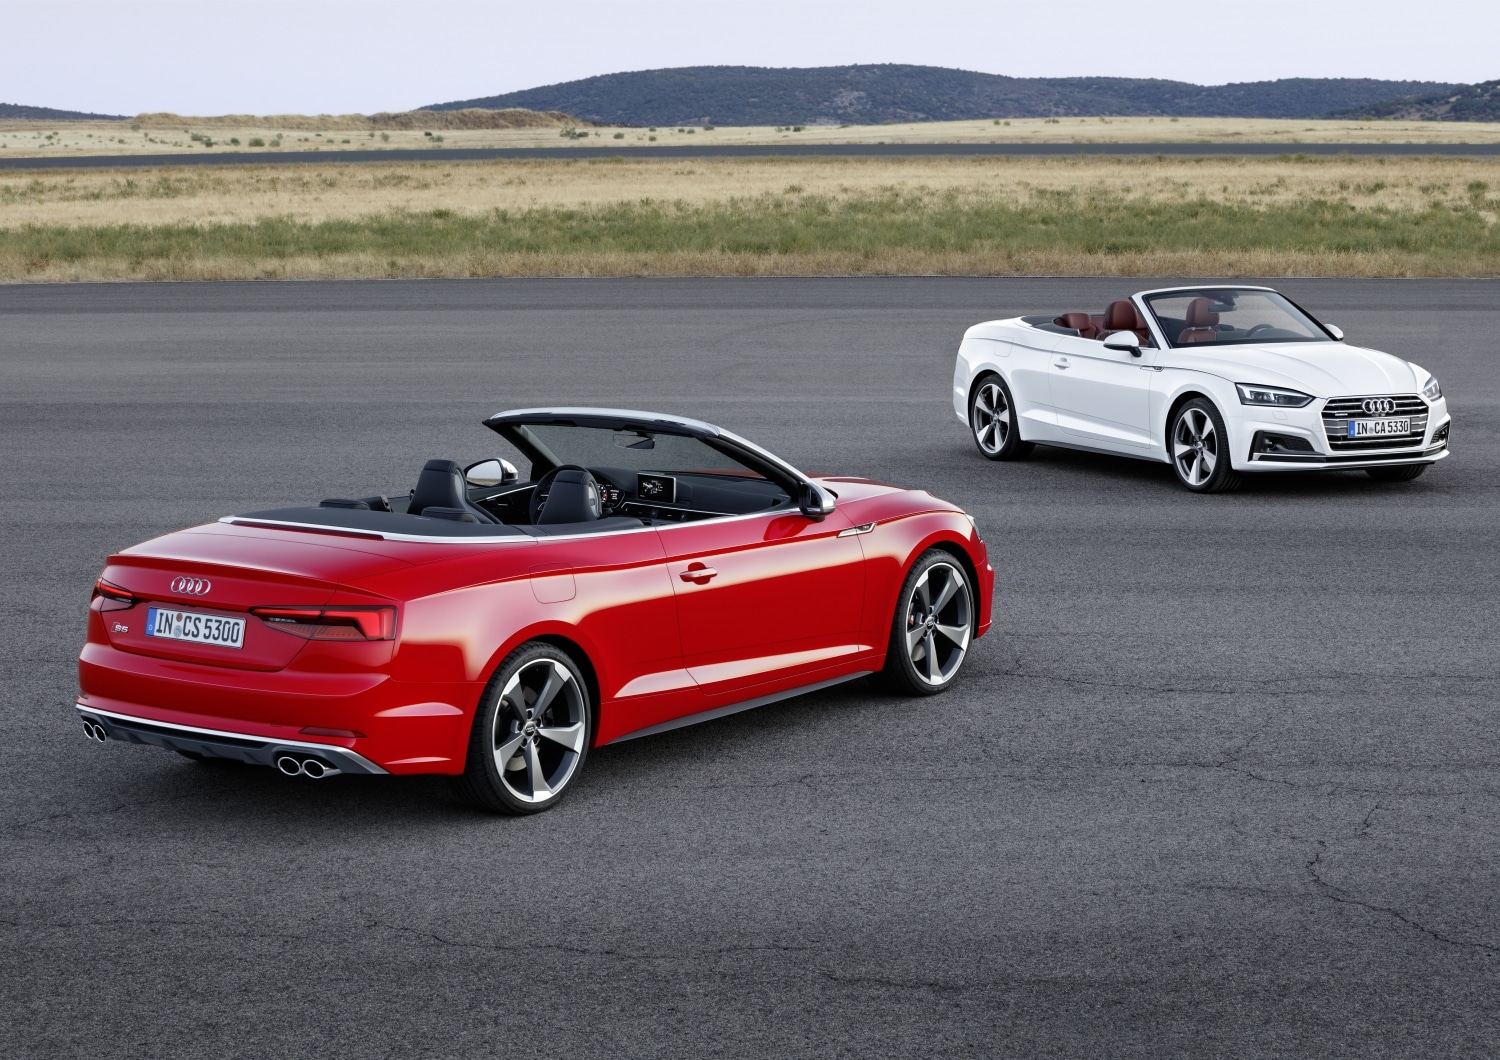 Audi Brings New A5, S5 Cabriolets To U.S. Market